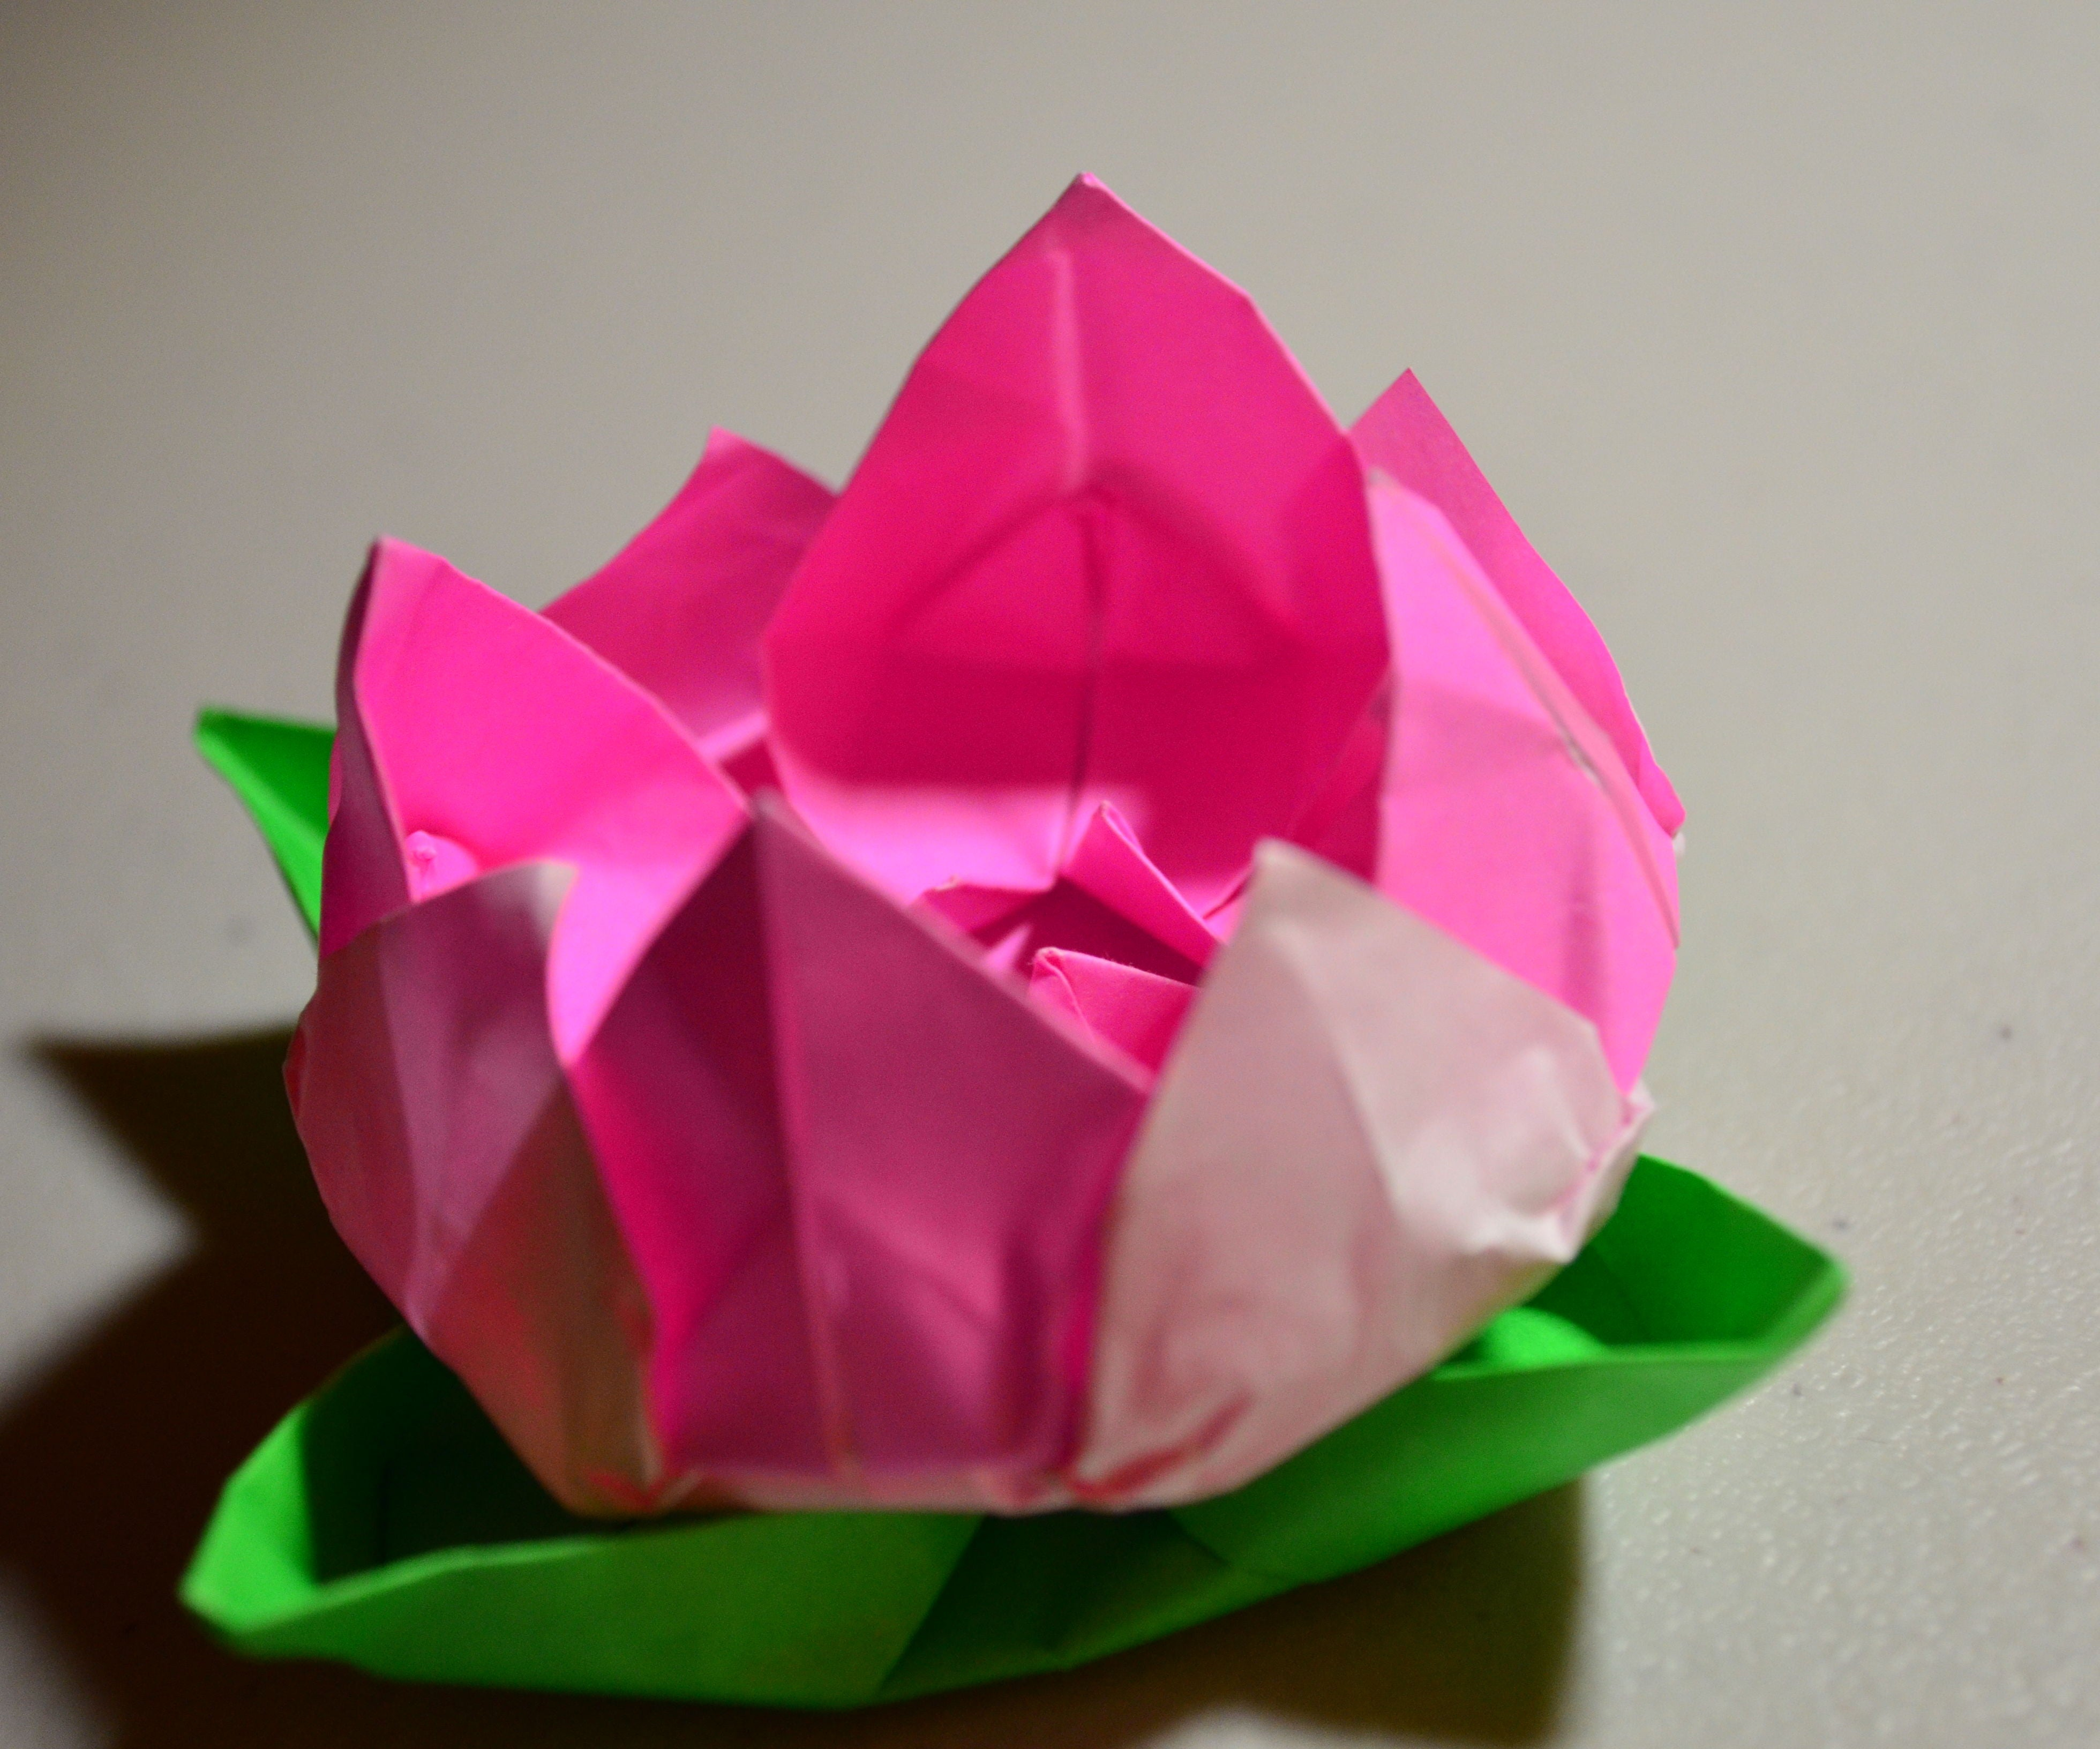 Origami Lotus Flower Easy Instructions - All About Craft | 3264x3920